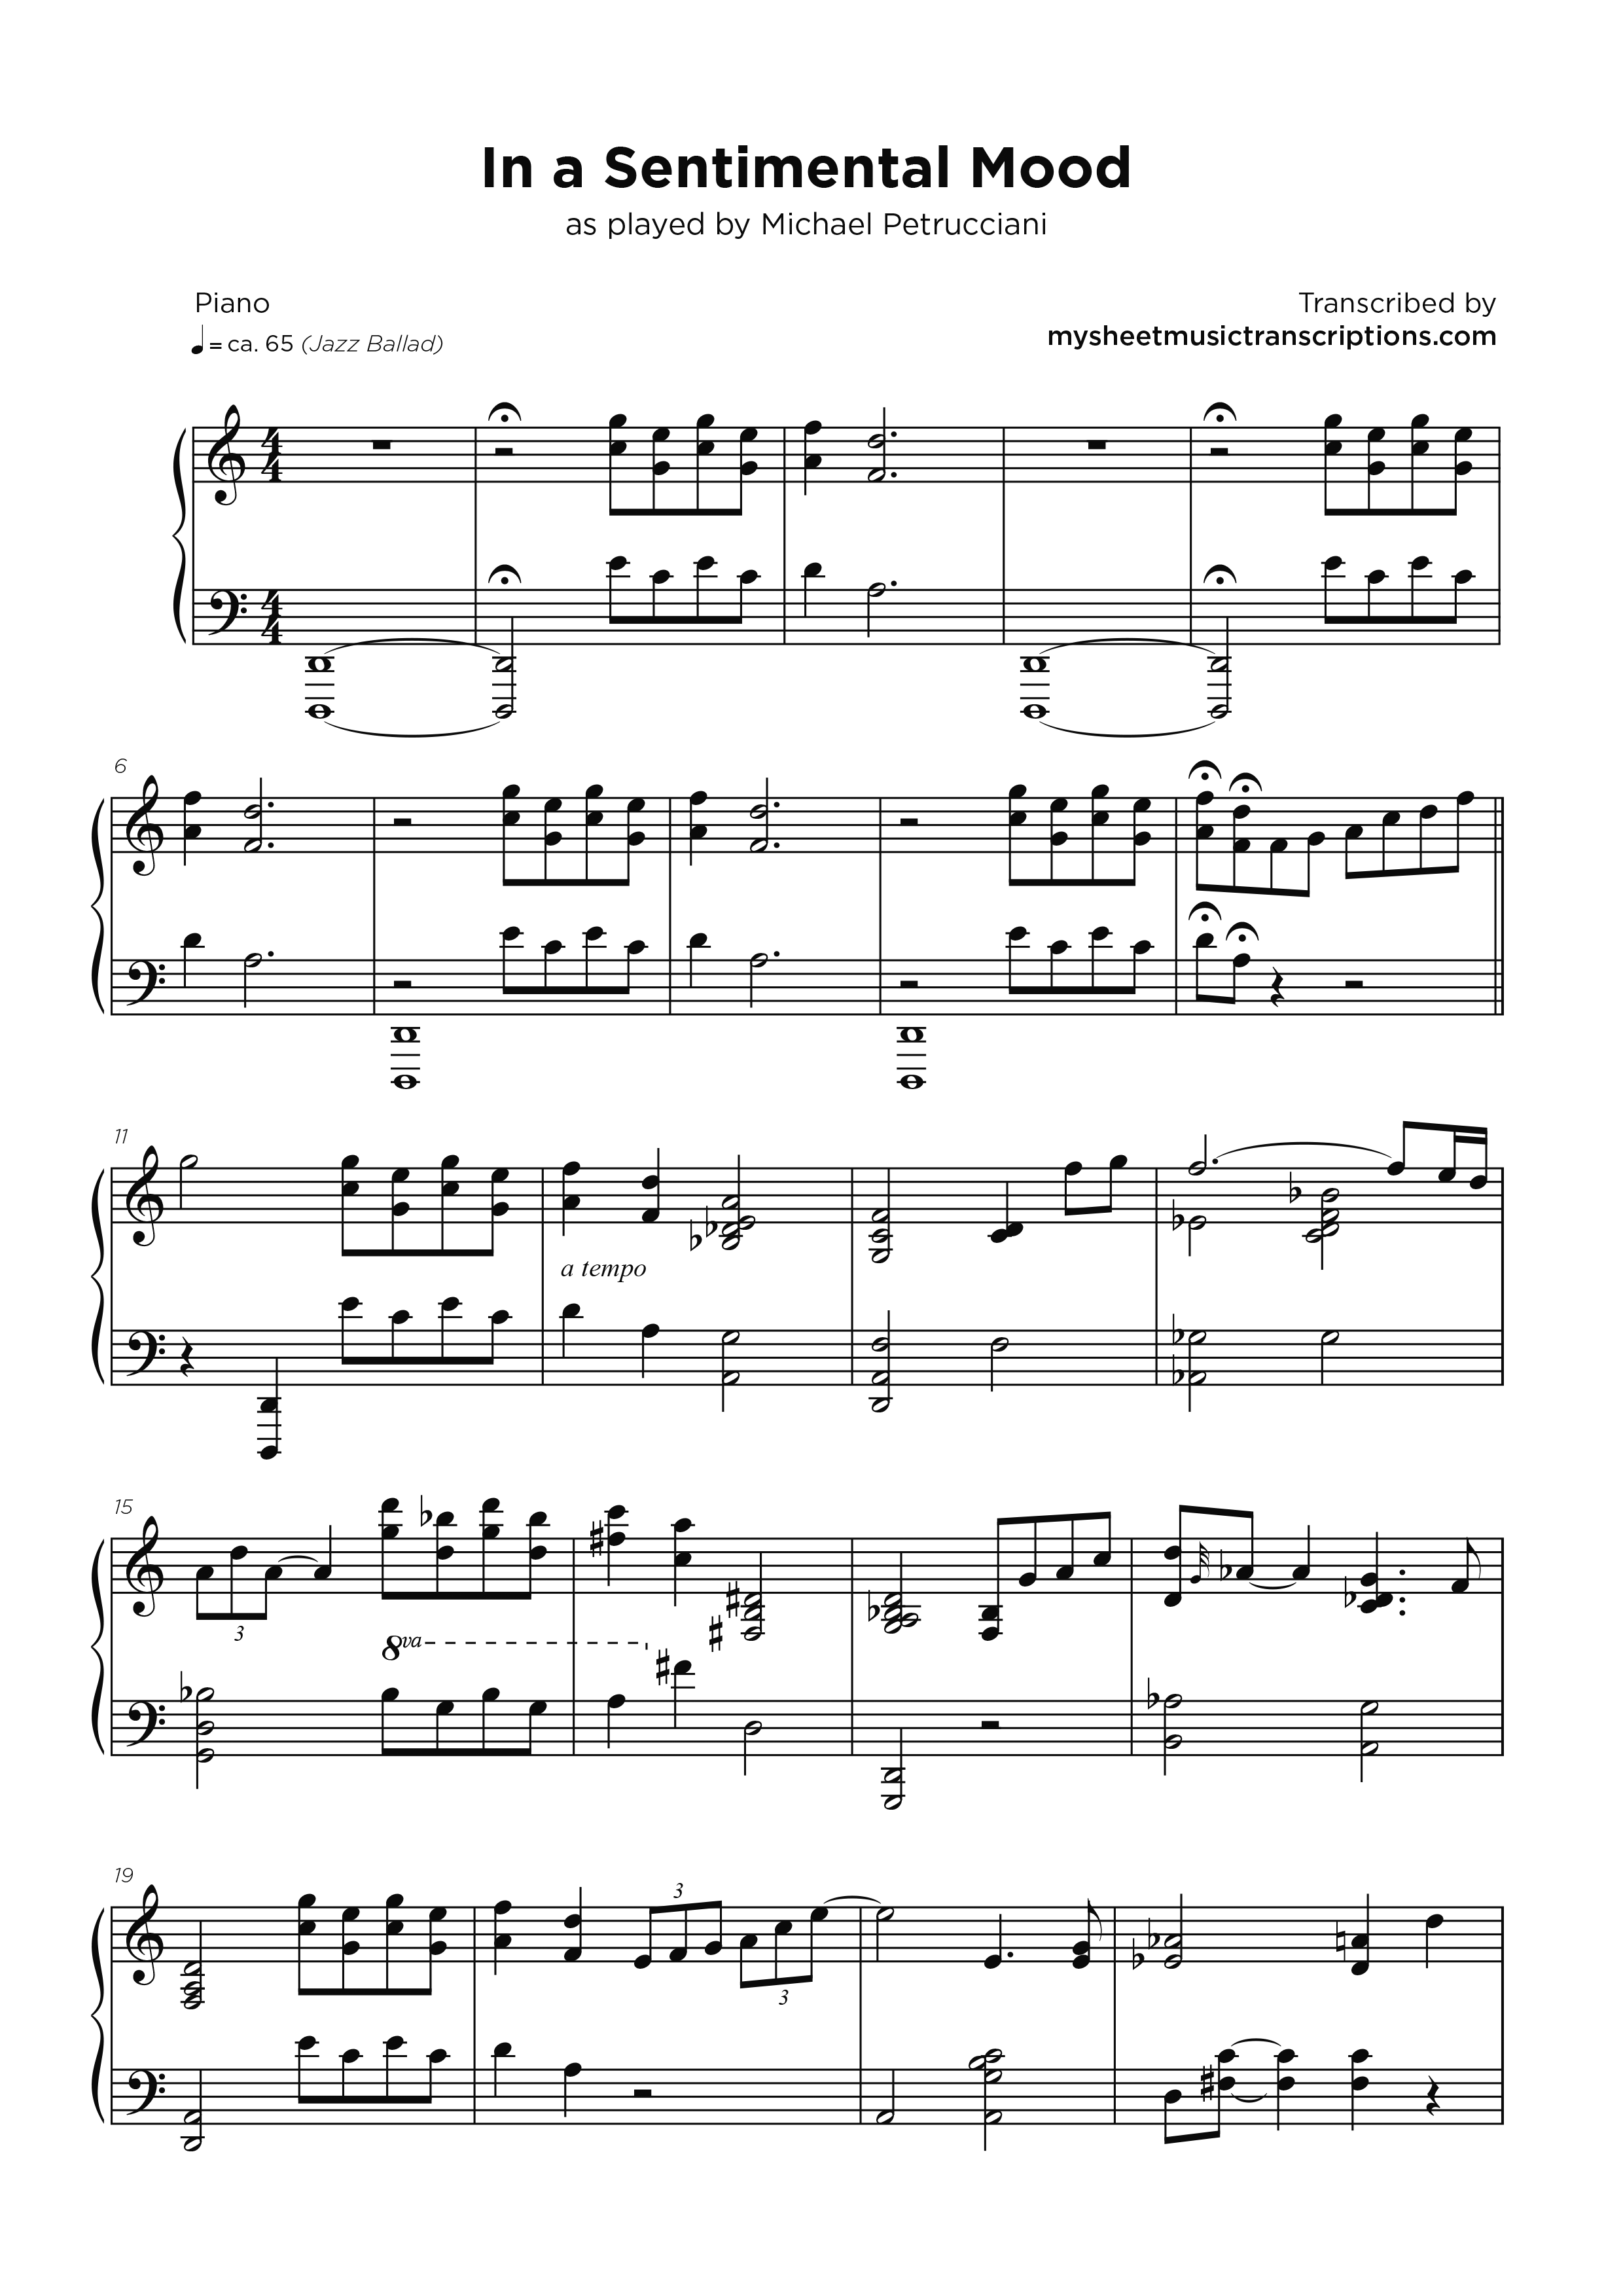 In a Sentimental Mood - Michael Petrucciani - My Sheet Music Transcriptions